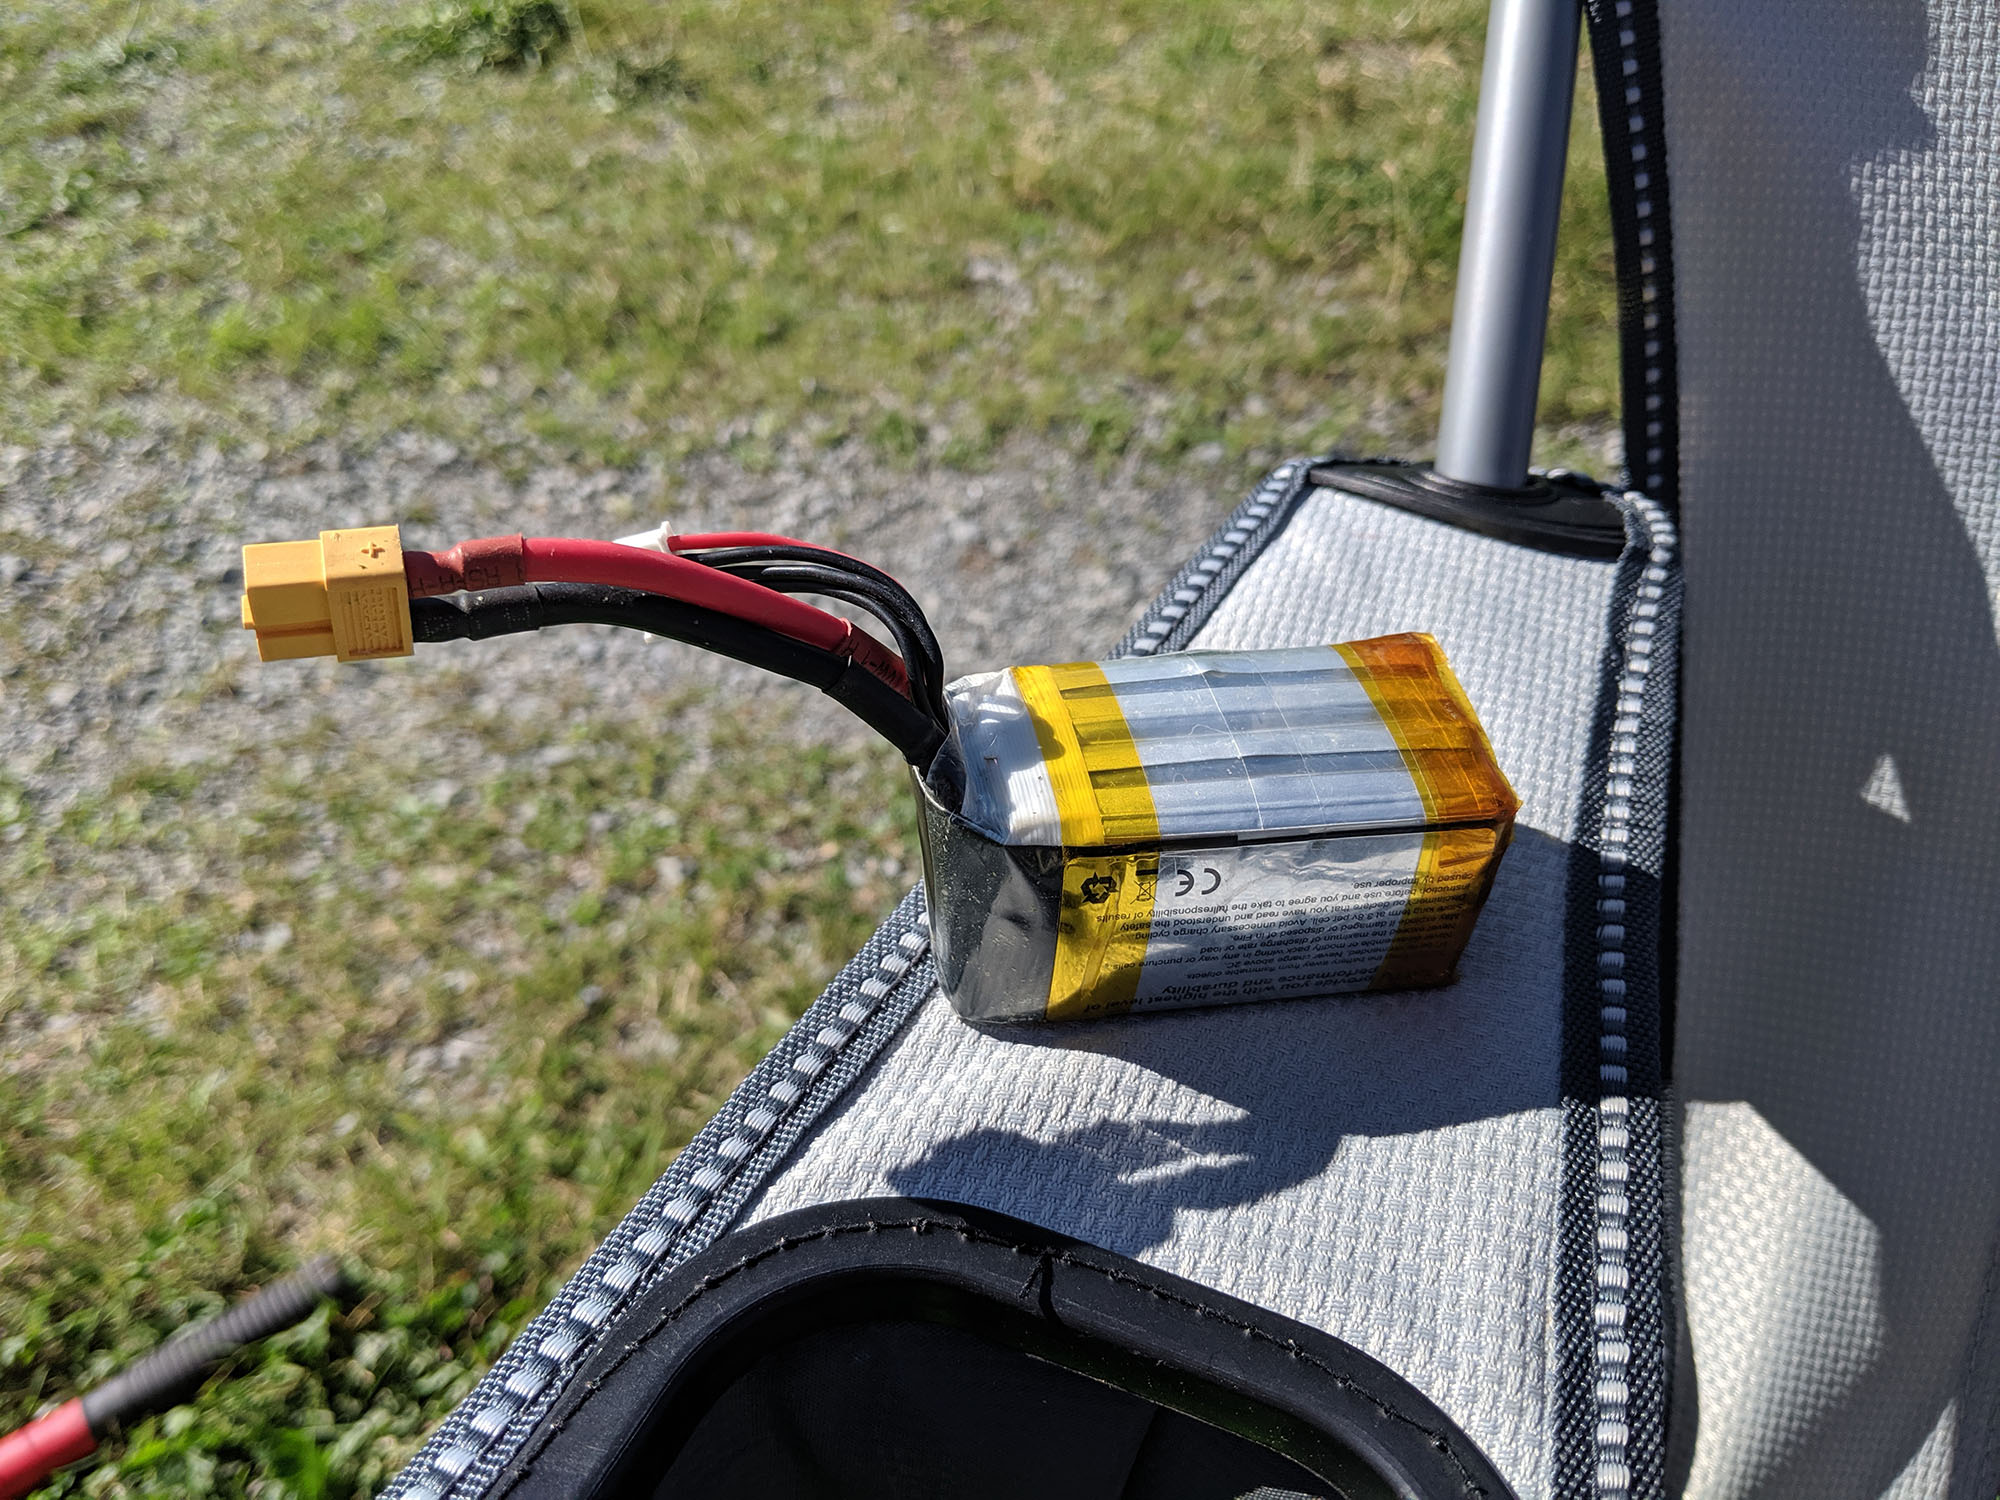 Spec Racing - Puffed 4S Battery